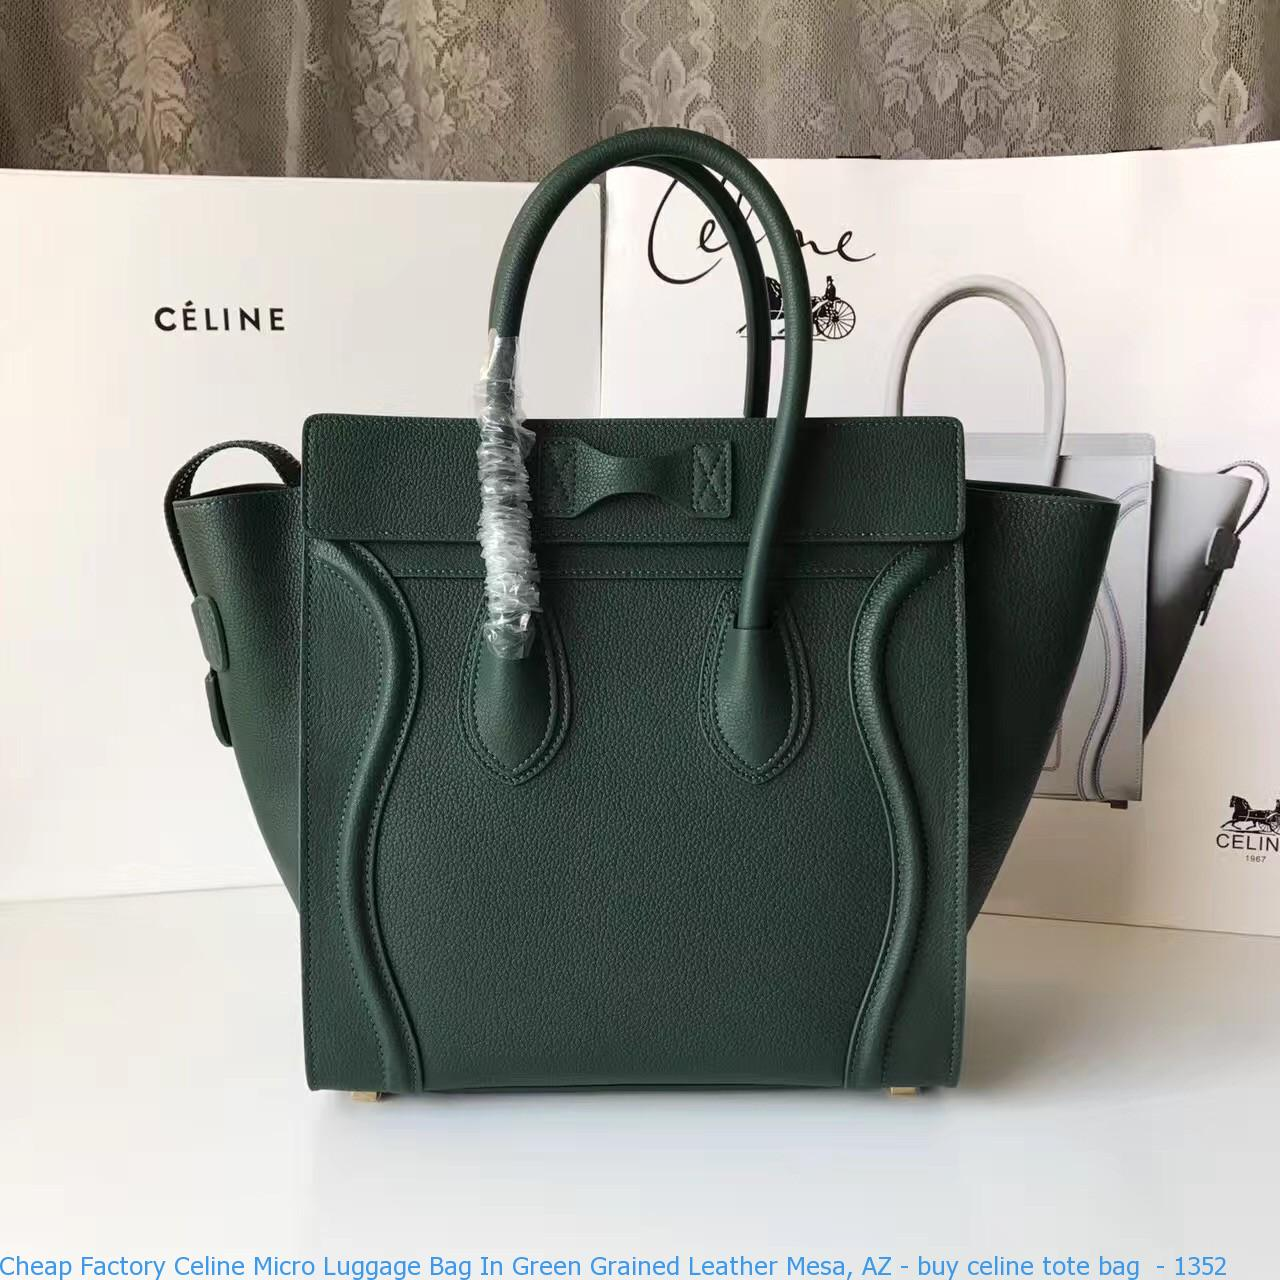 Cheap Factory Celine Micro Luggage Bag In Green Grained Leather Mesa Az Buy Celine Tote Bag 1352 Cheap Celine Bags Celine Bags Outlet Celine Replica Bags Online